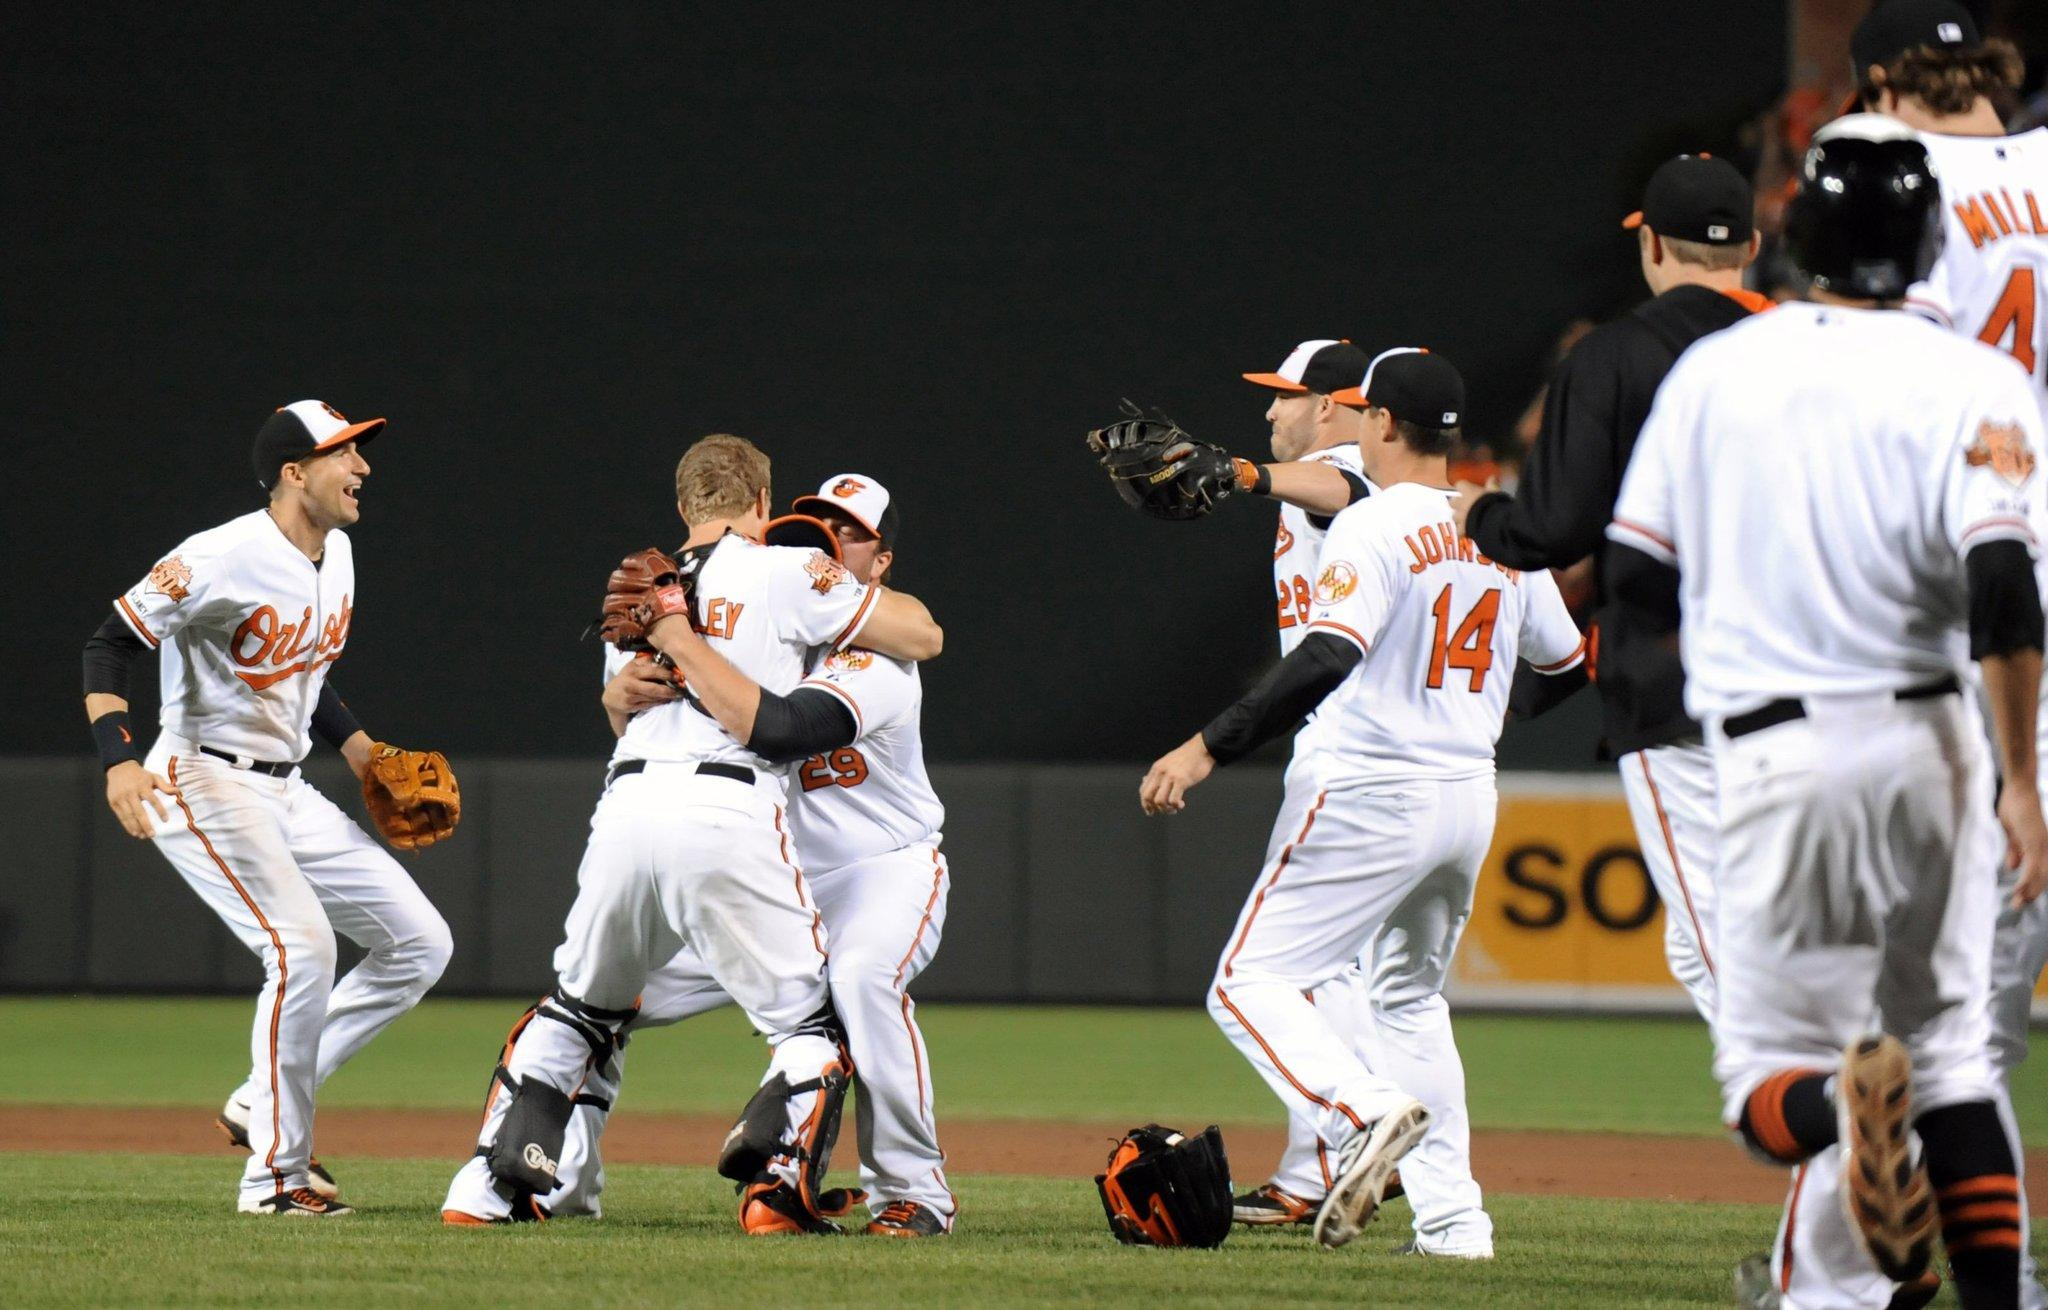 The Baltimore Orioles celebrate after defeating the Toronto Blue Jays, 8-2, to clinch the American League East division at Oriole Park at Camden Yards in Baltimore on Tuesday, Sept. 16, 2014.